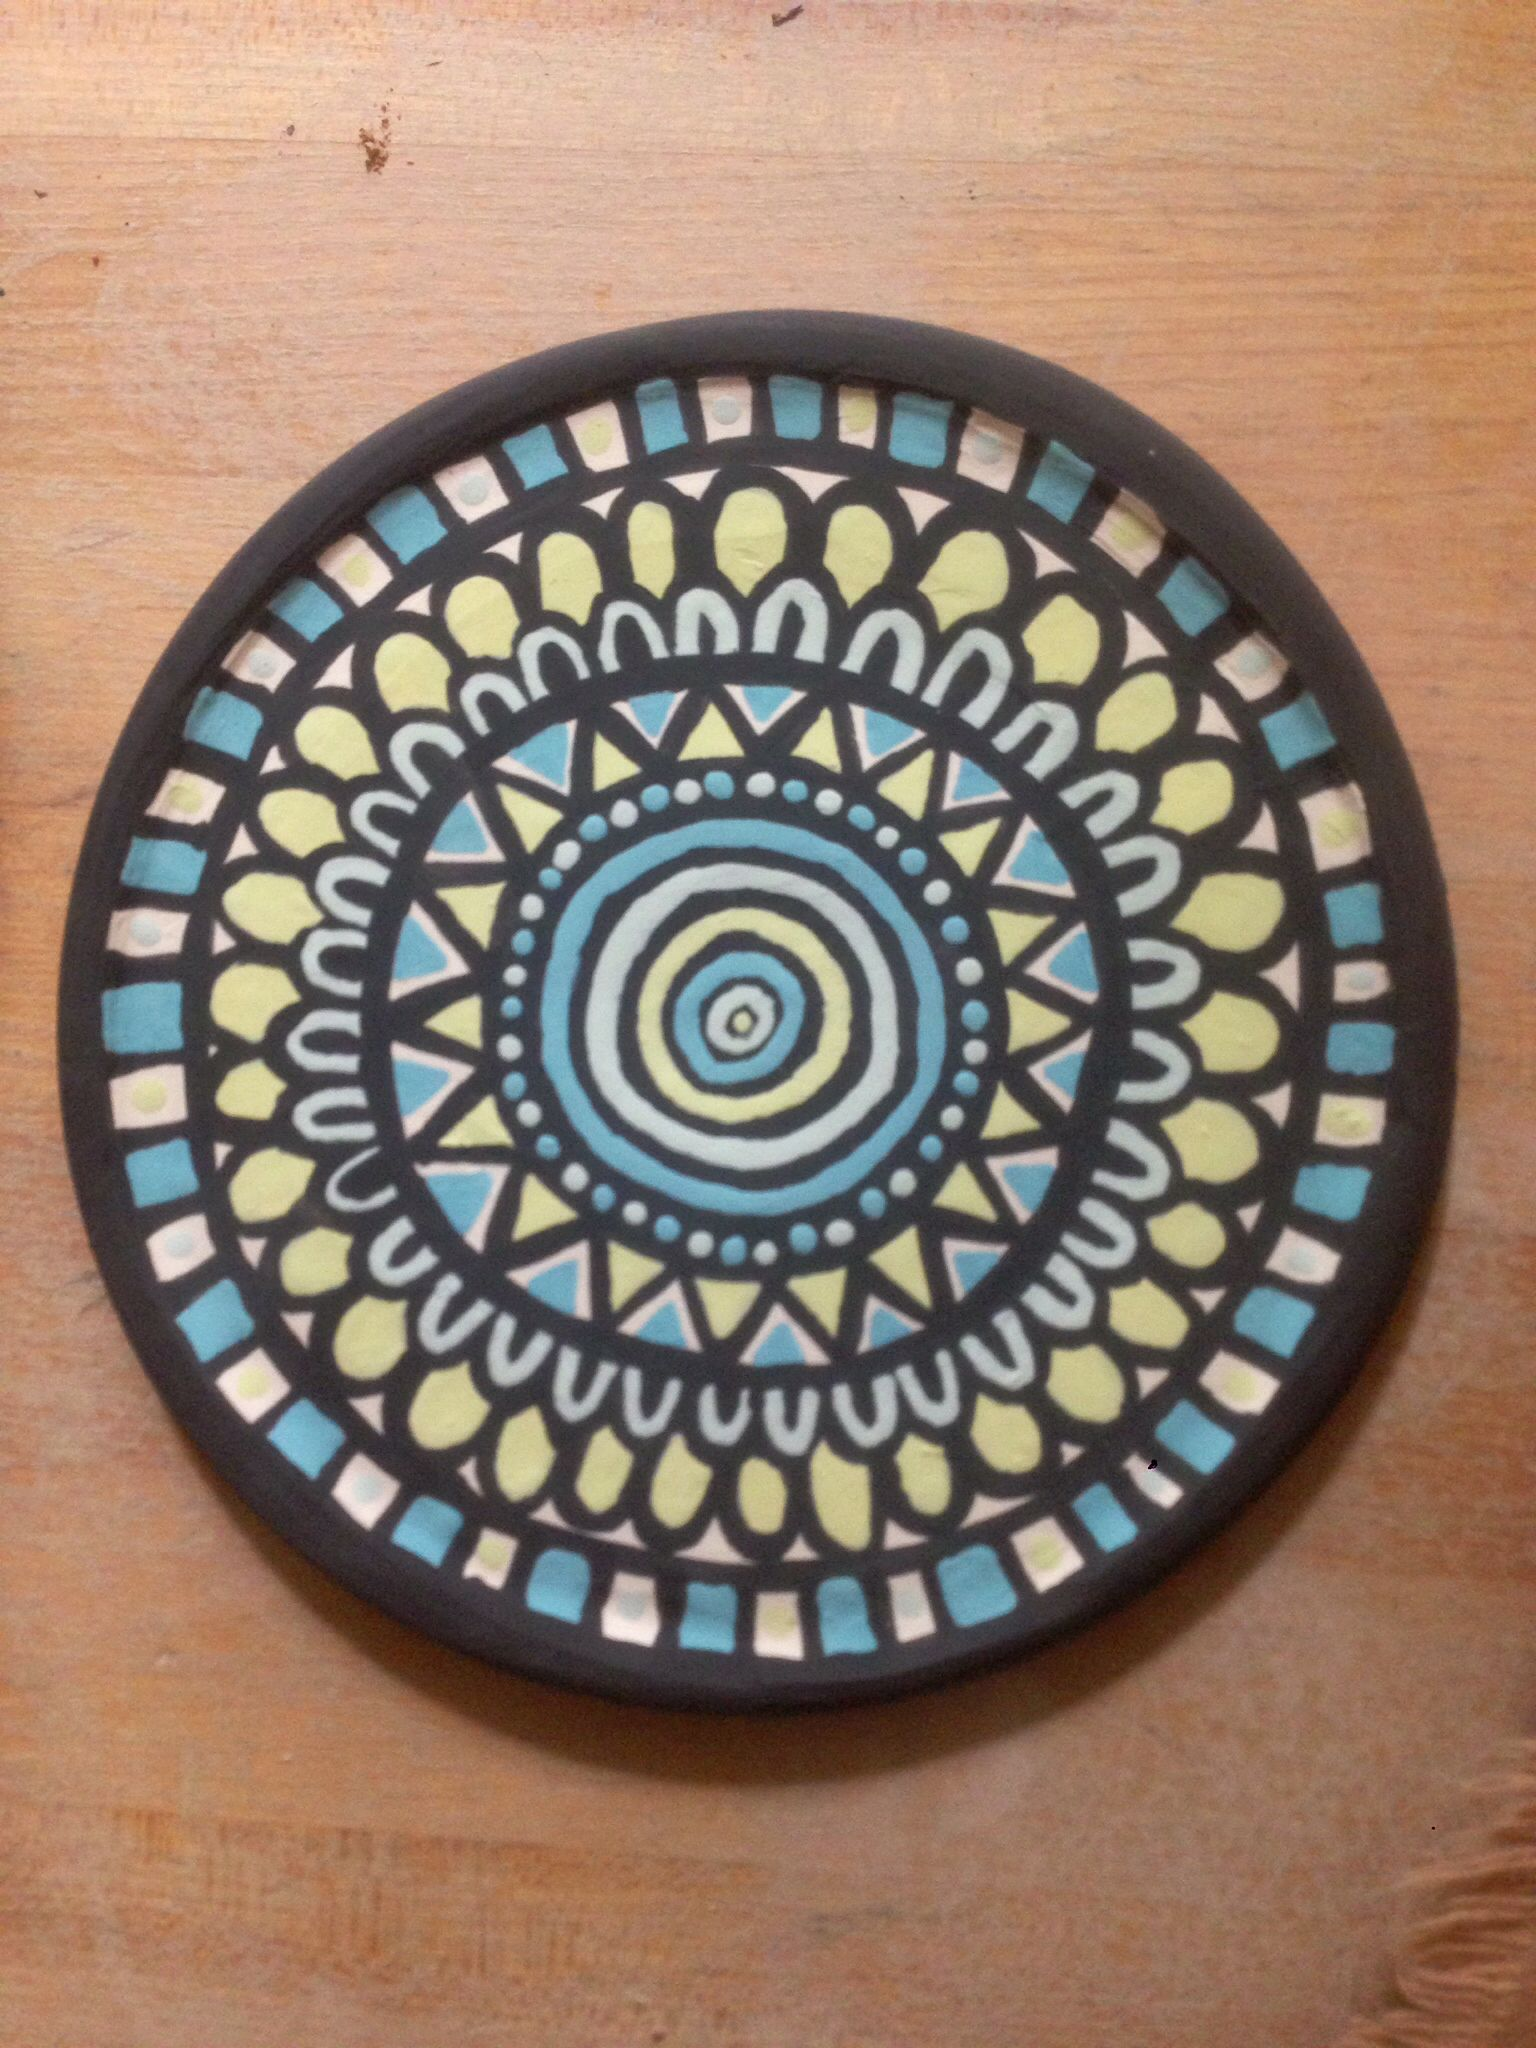 Ceramic plate design by Annie Dycus Yes  Pinterest & plate design by Annie Dycus Yes : Pinterest